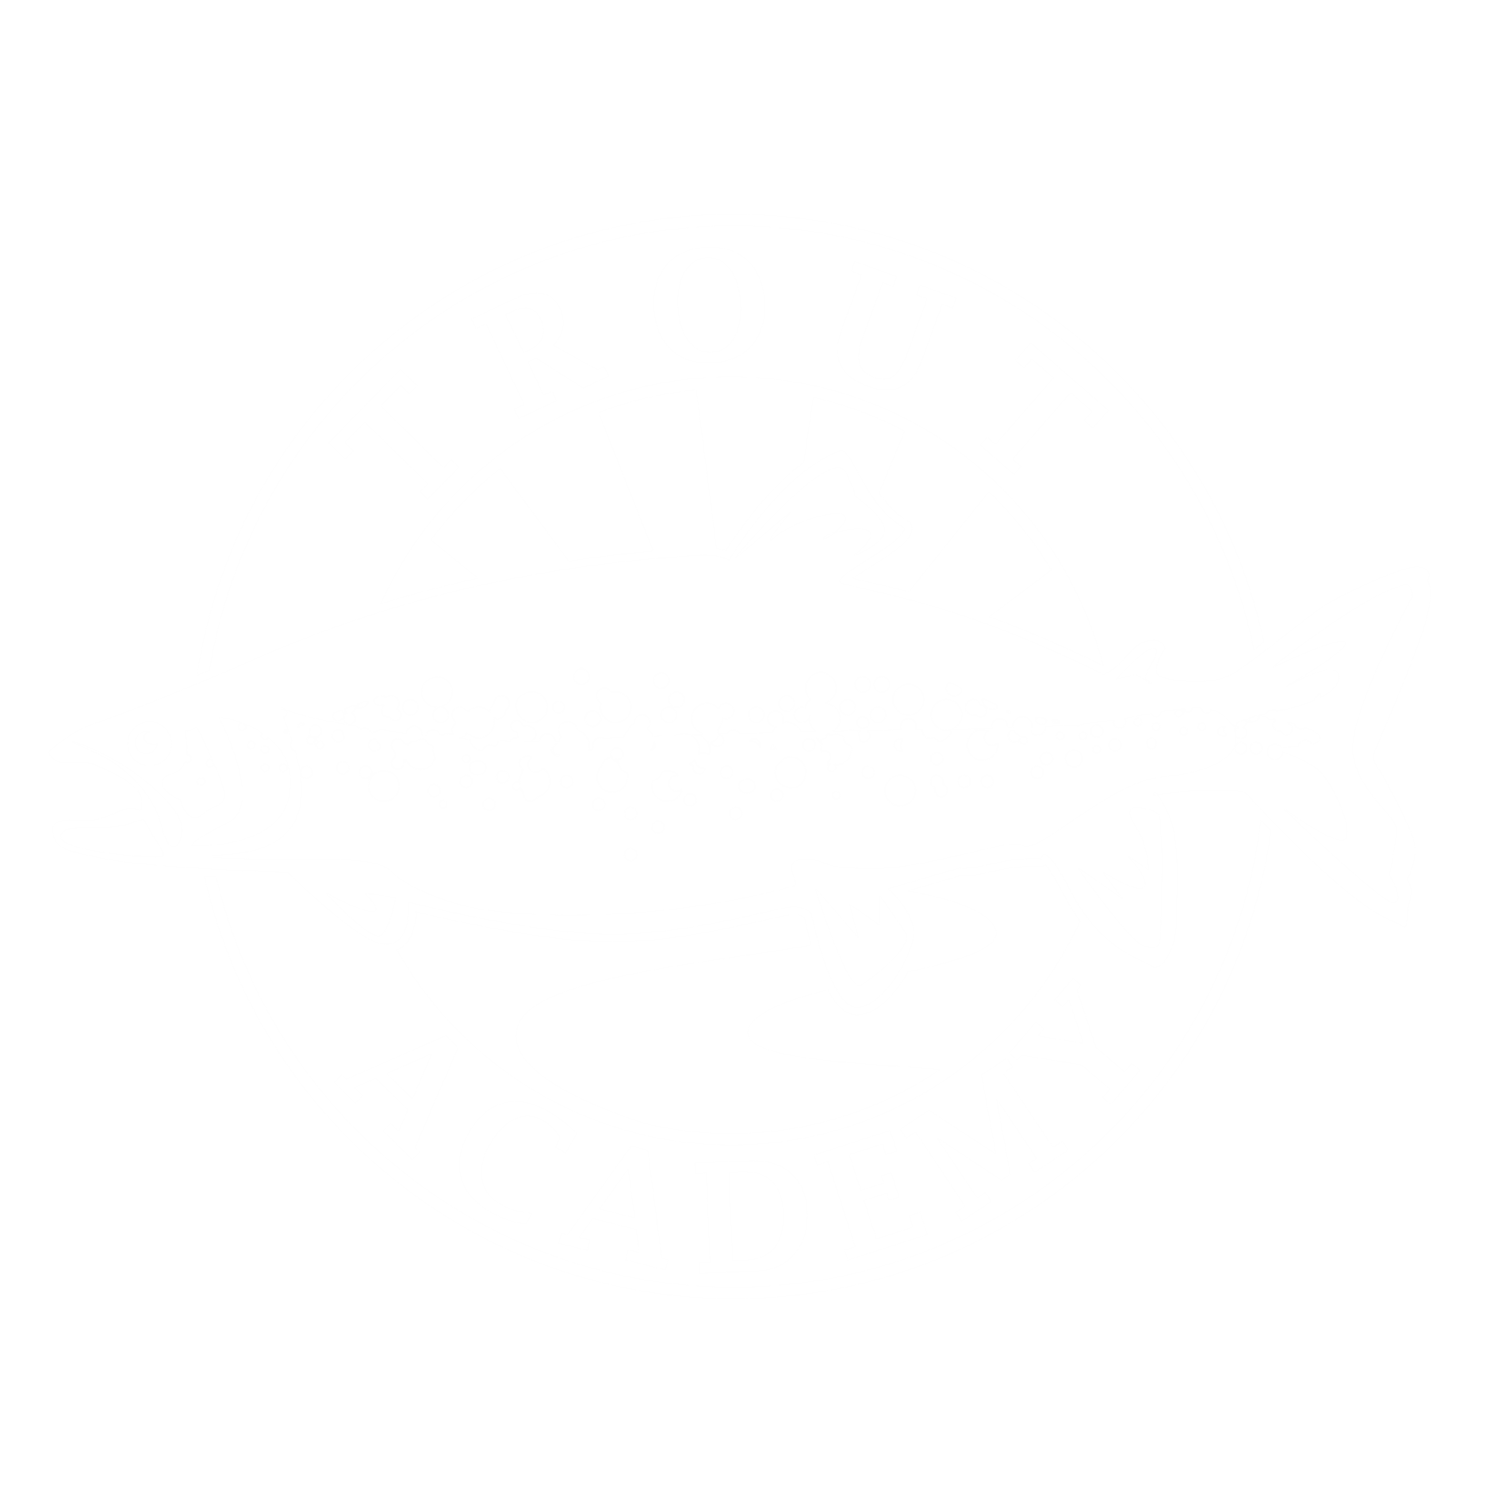 Trout Academy